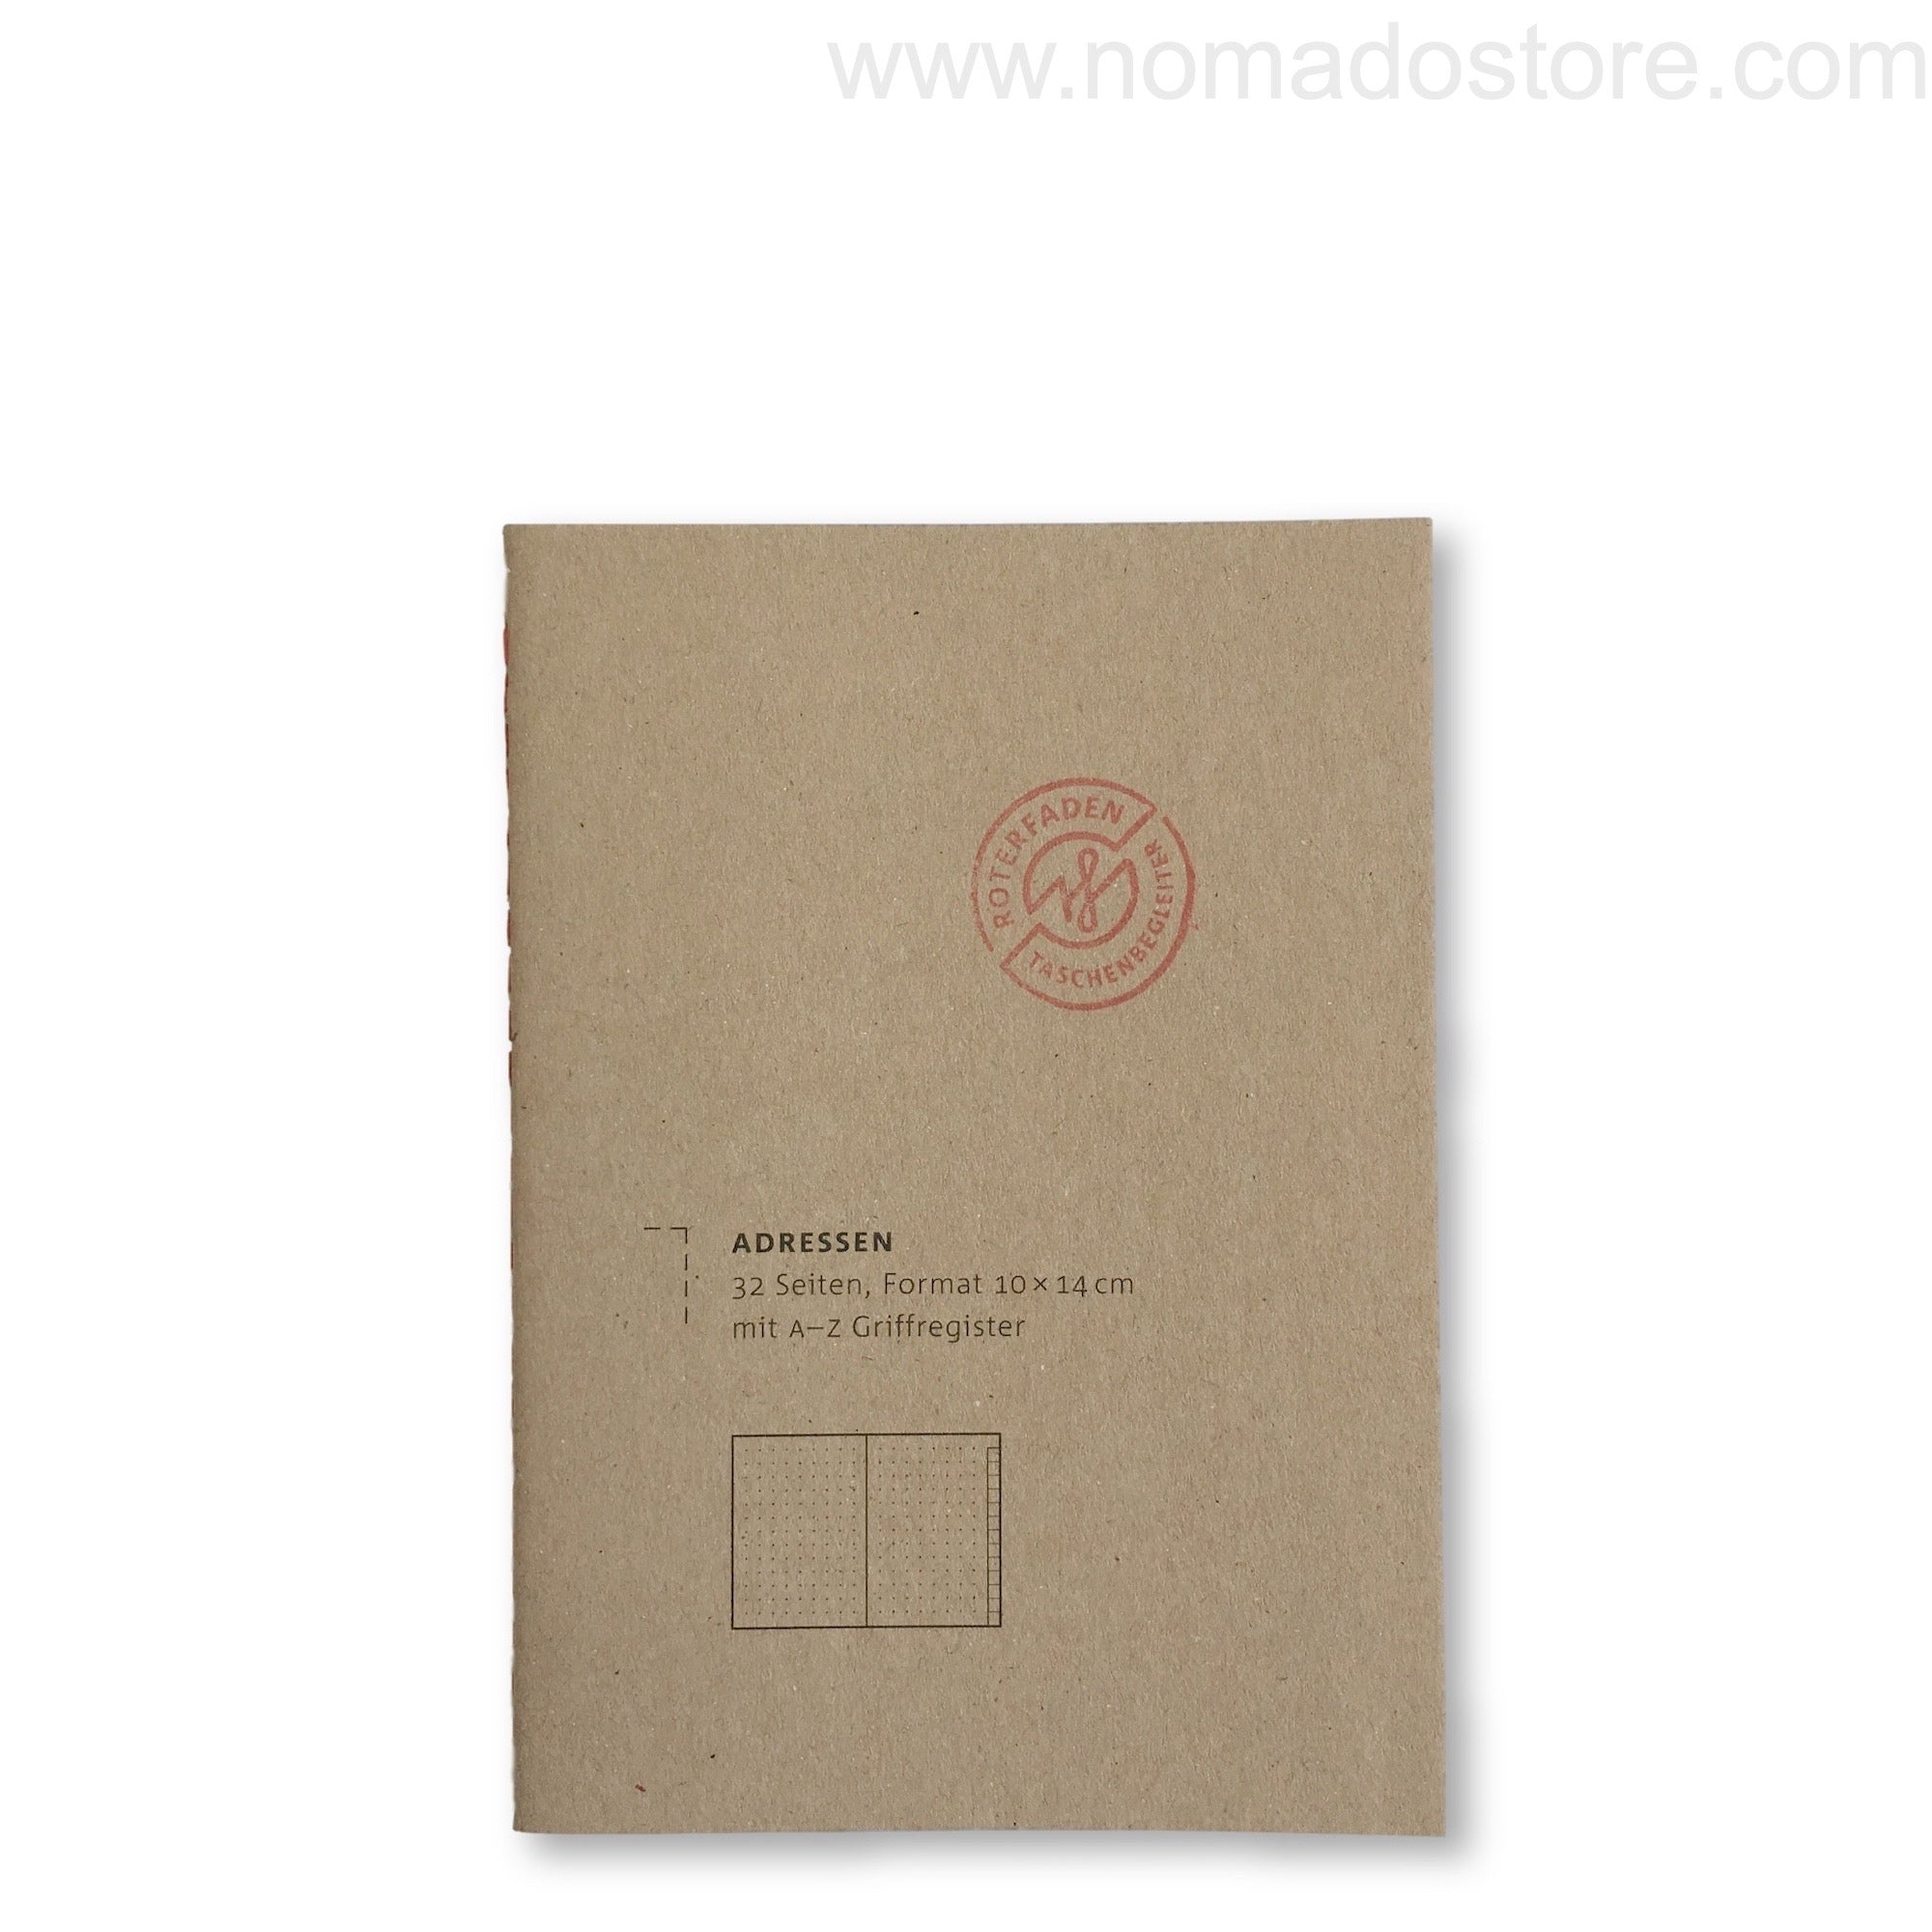 Roterfaden Smaller A6 Address Book (10x14cm) - NOMADO Store